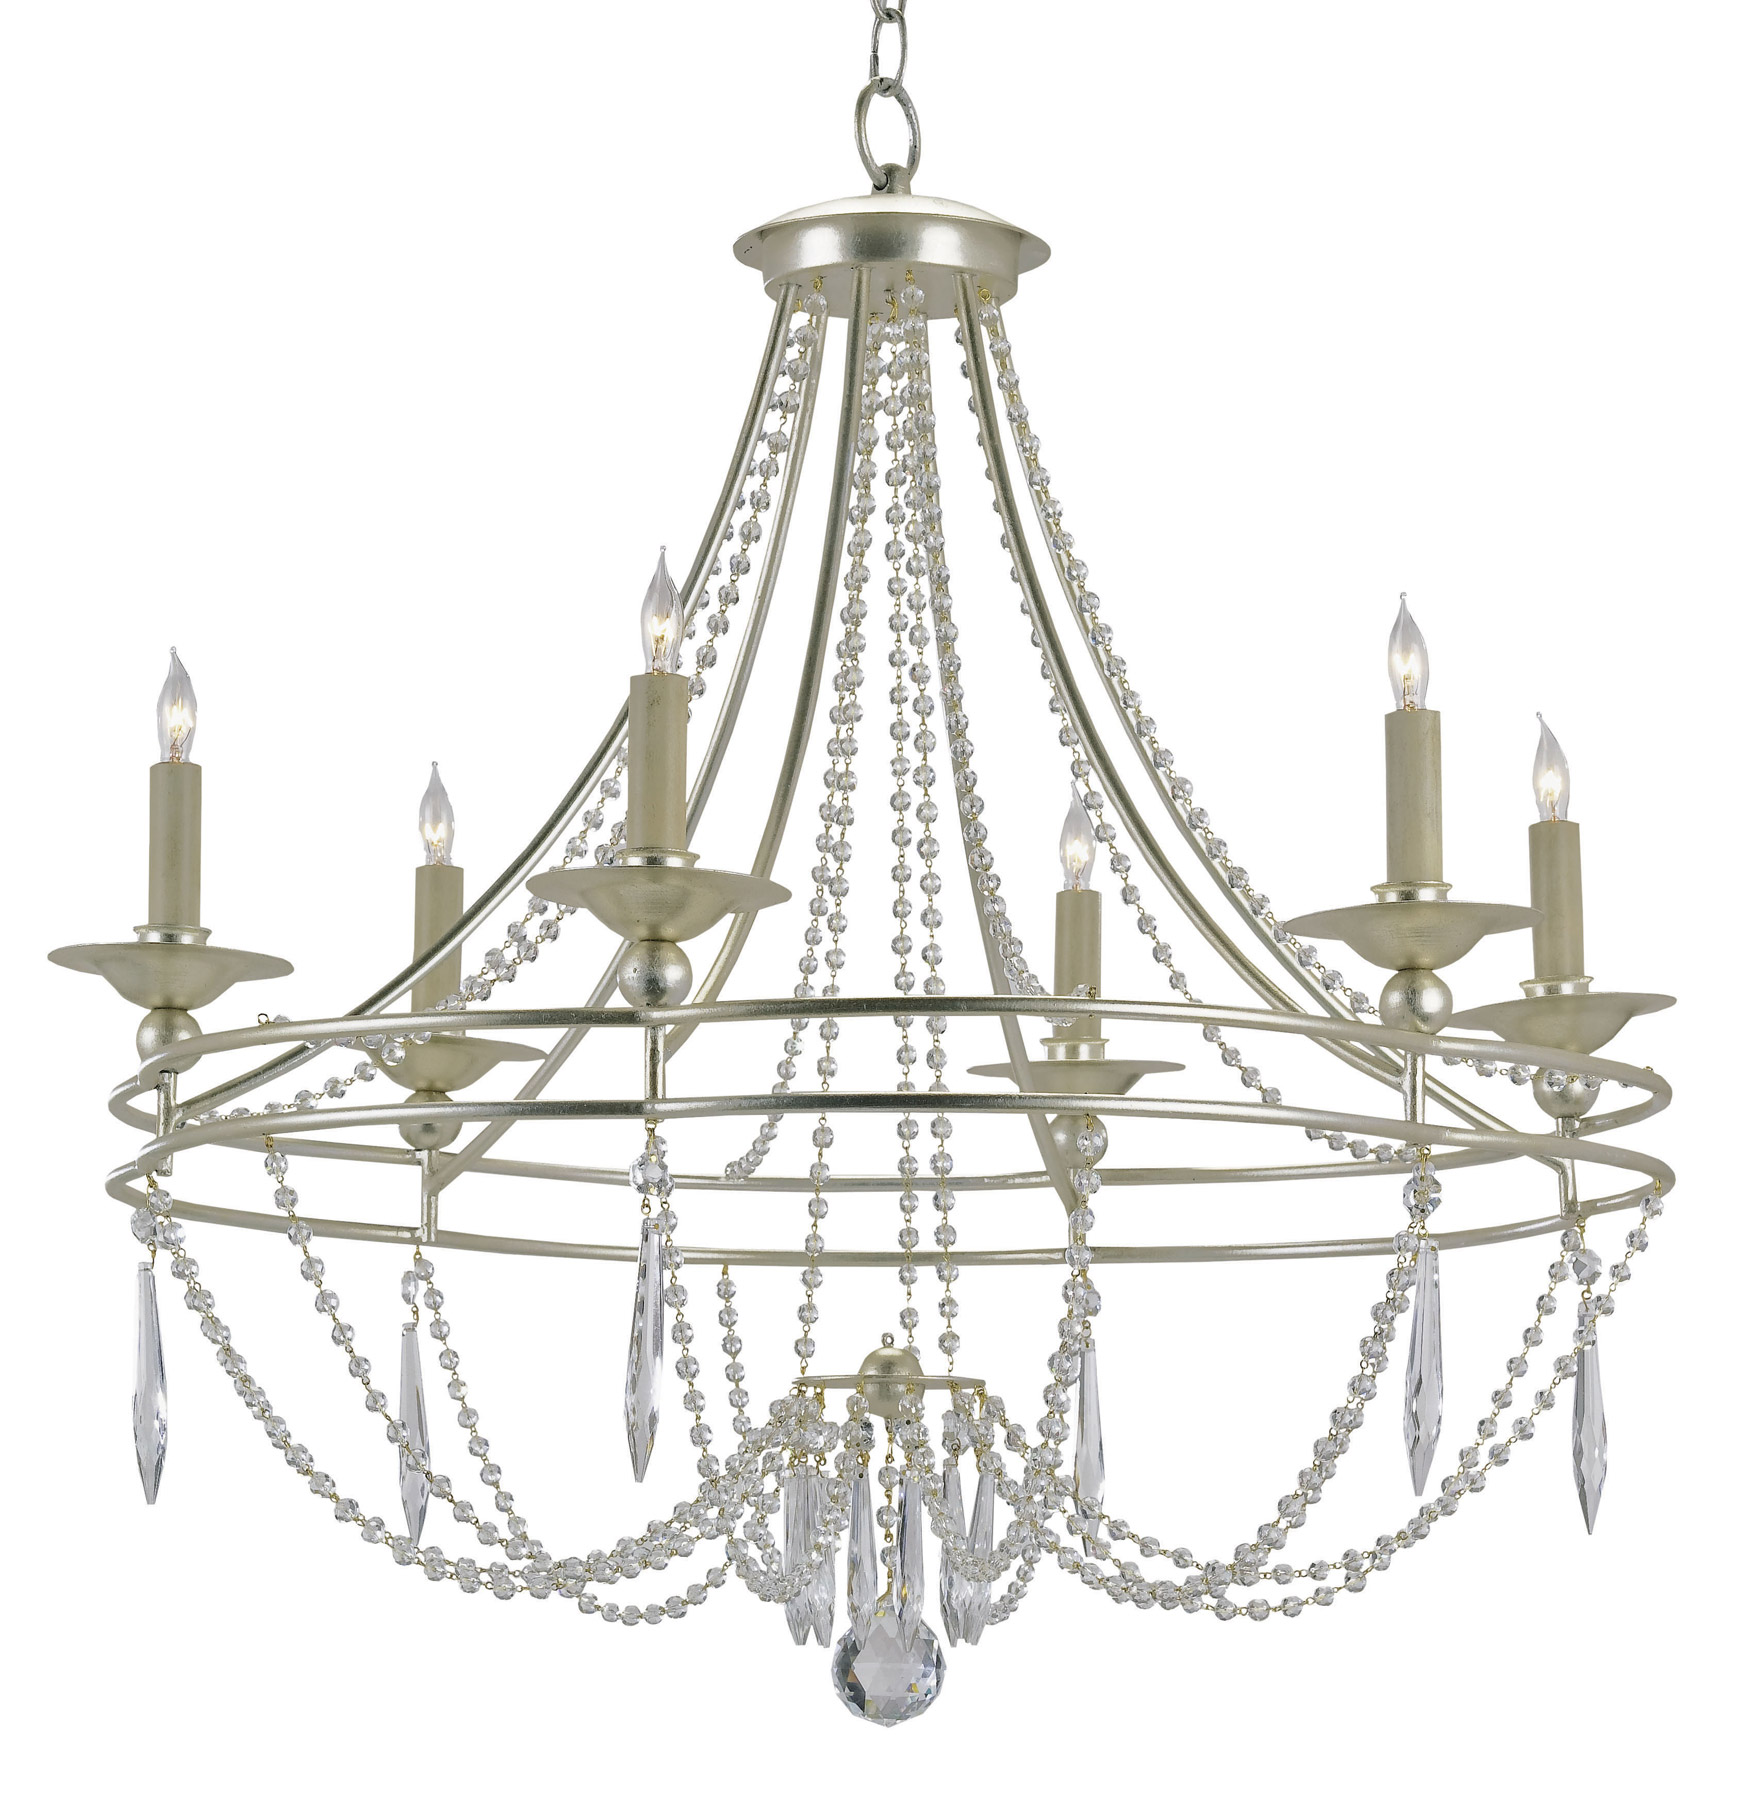 Currey And Company Lighting Website: Currey And Company 9161 Crystal Watteau Six Light Chandelier